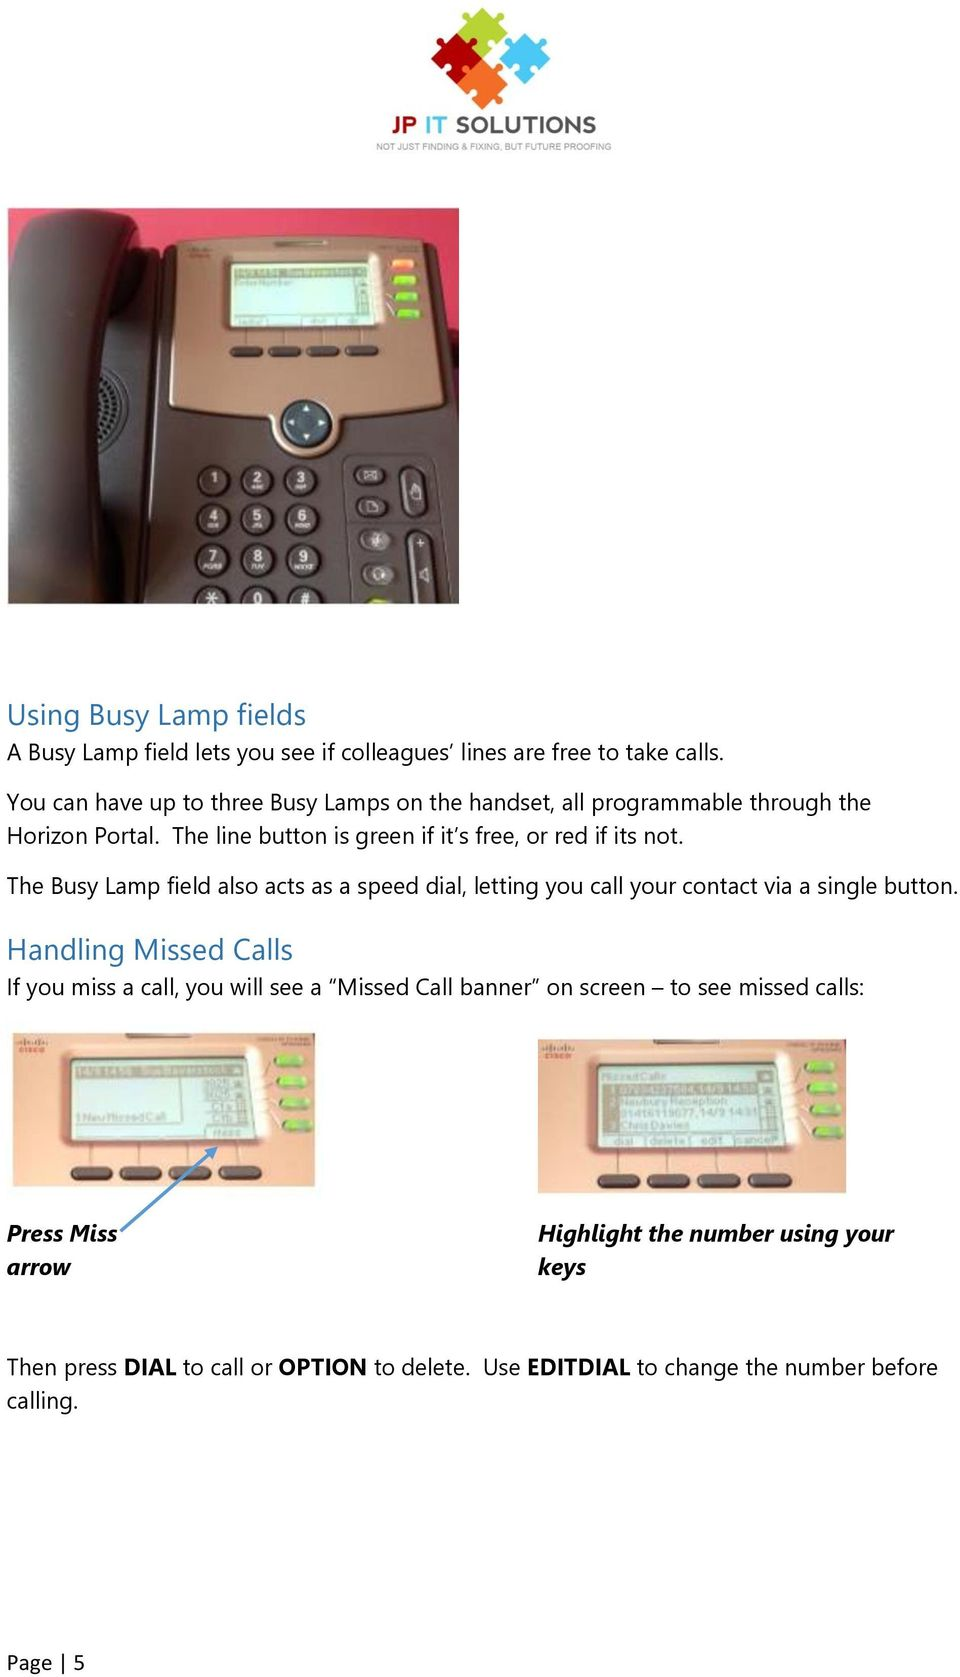 The Busy Lamp field also acts as a speed dial, letting you call your contact via a single button.